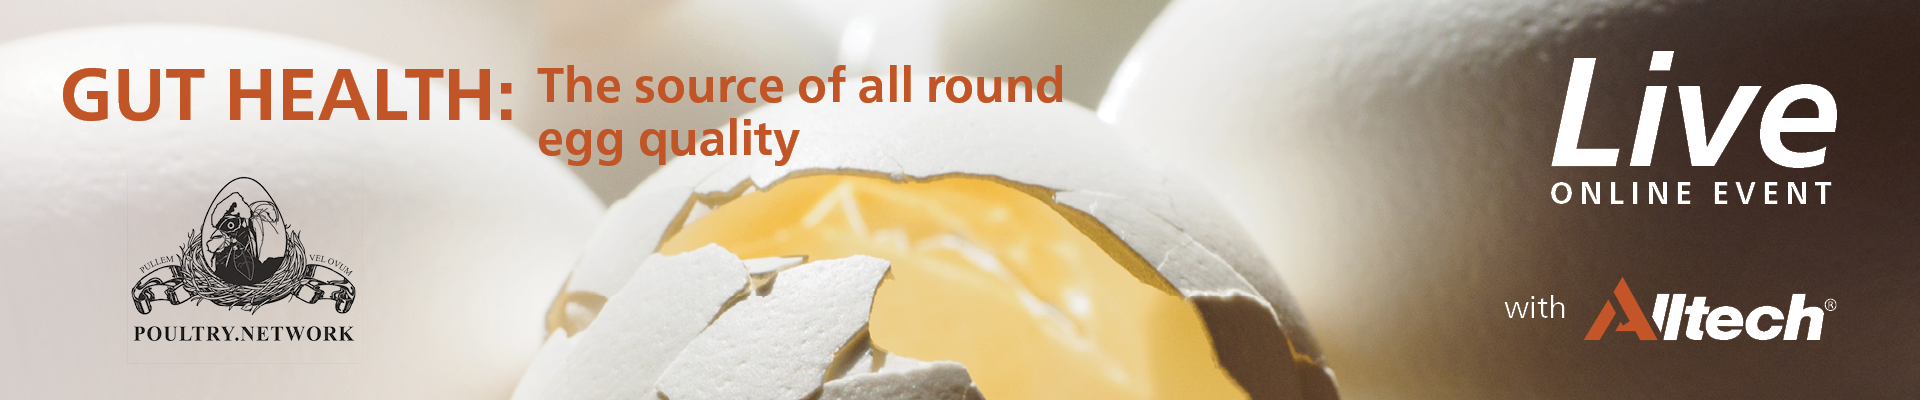 GUT HEALTH: The source of all round egg quality